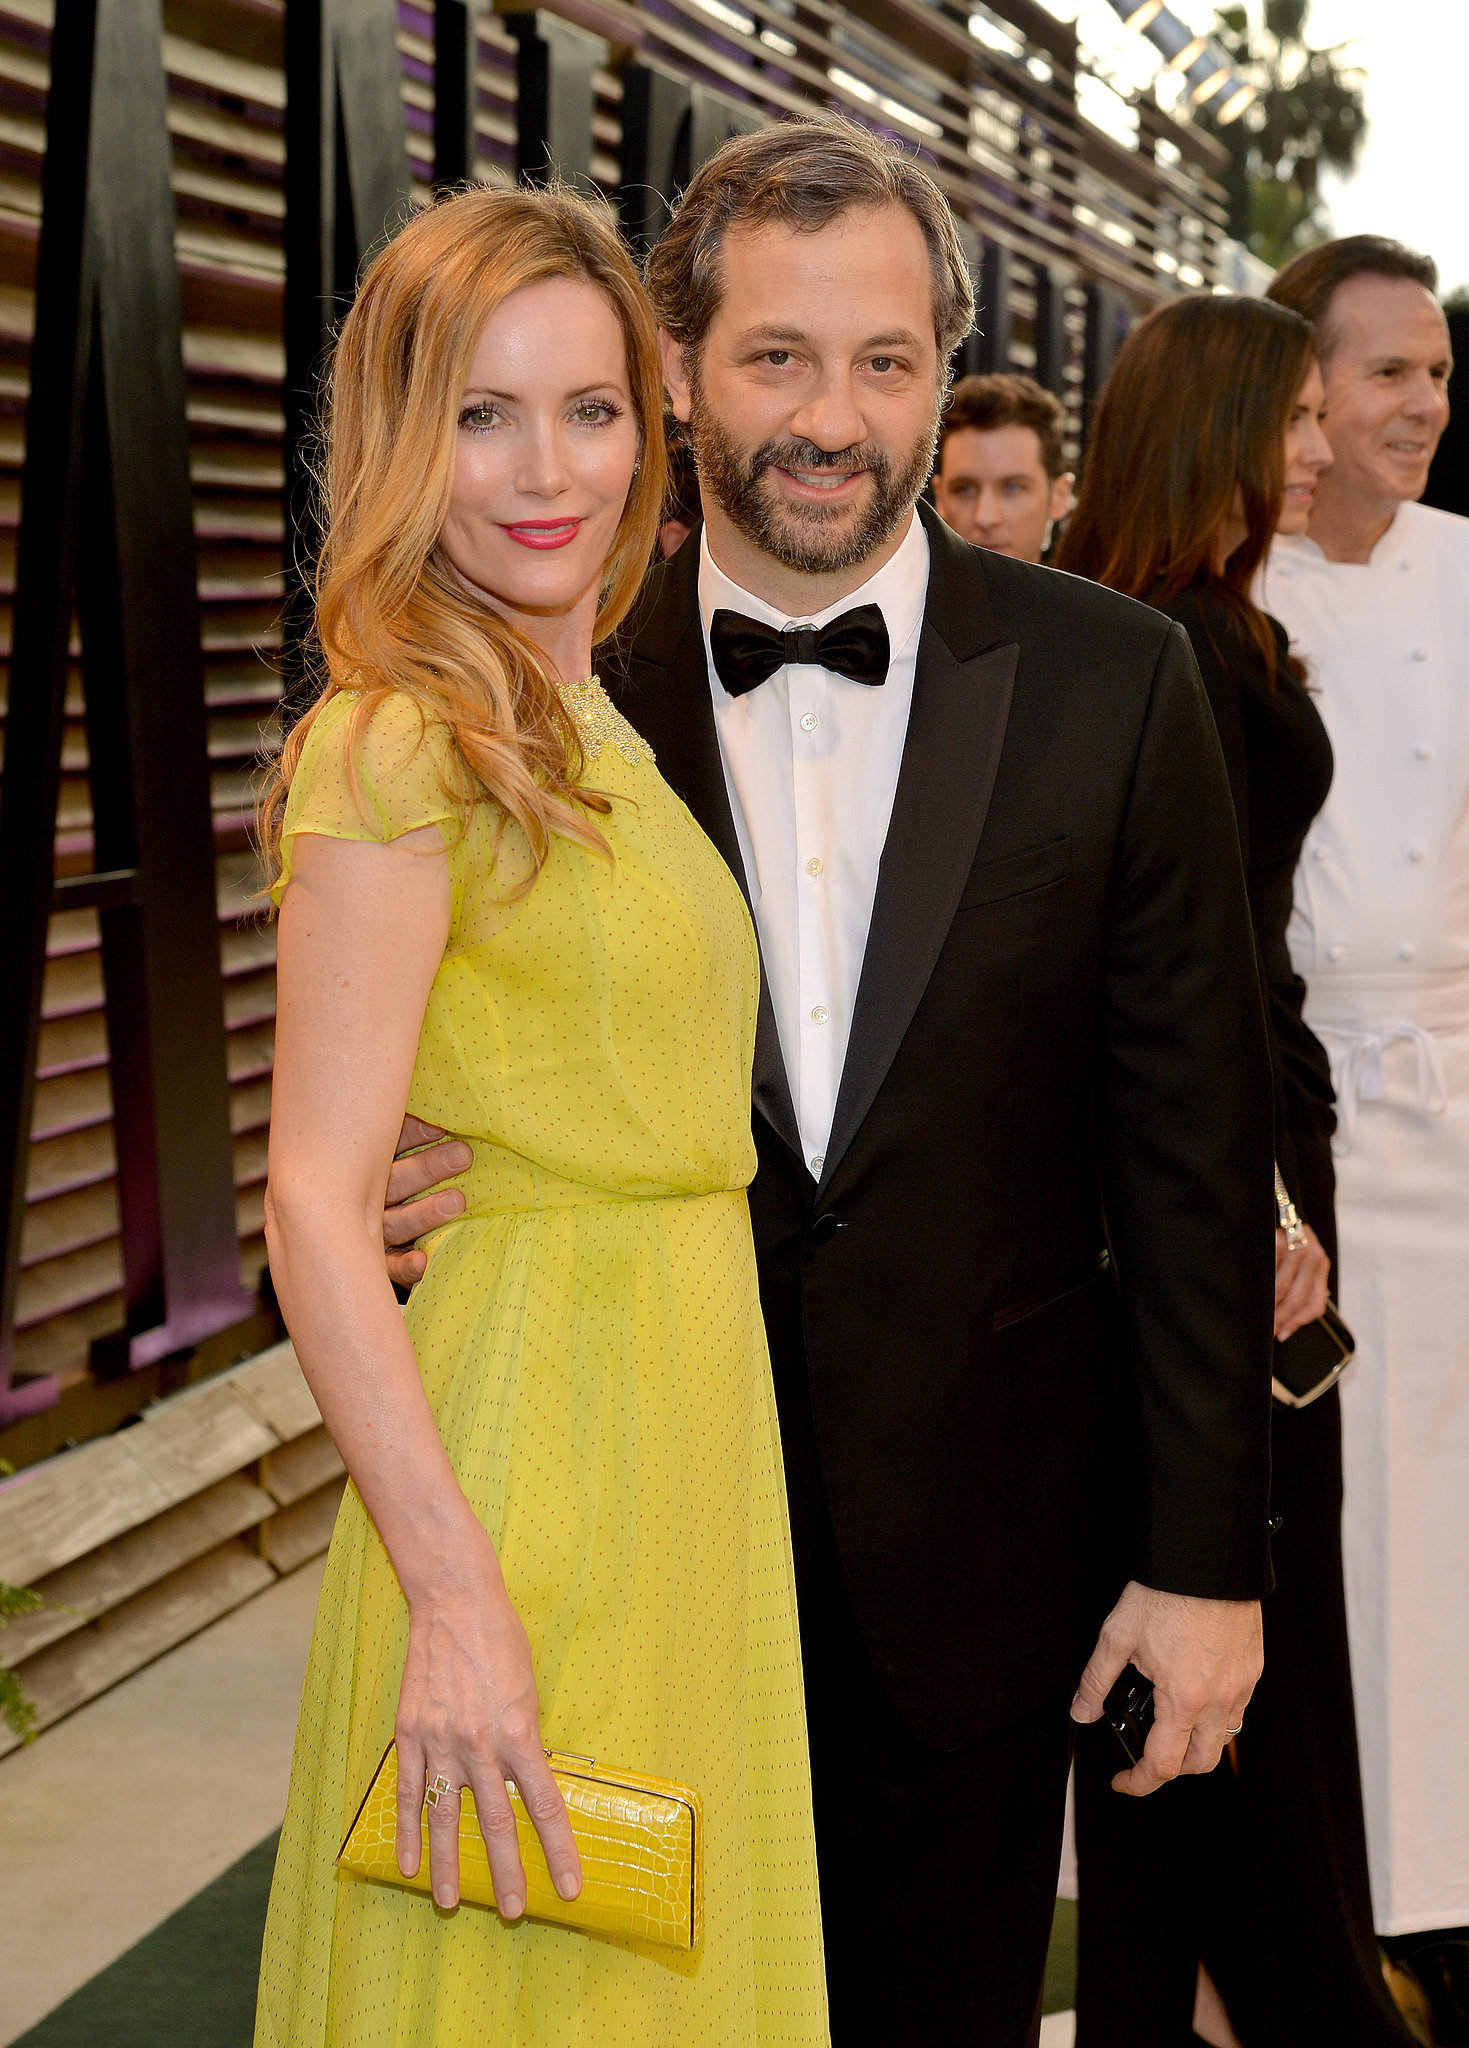 Leslie Mann and Judd Apatow arrived together for the Vanity Fair party.